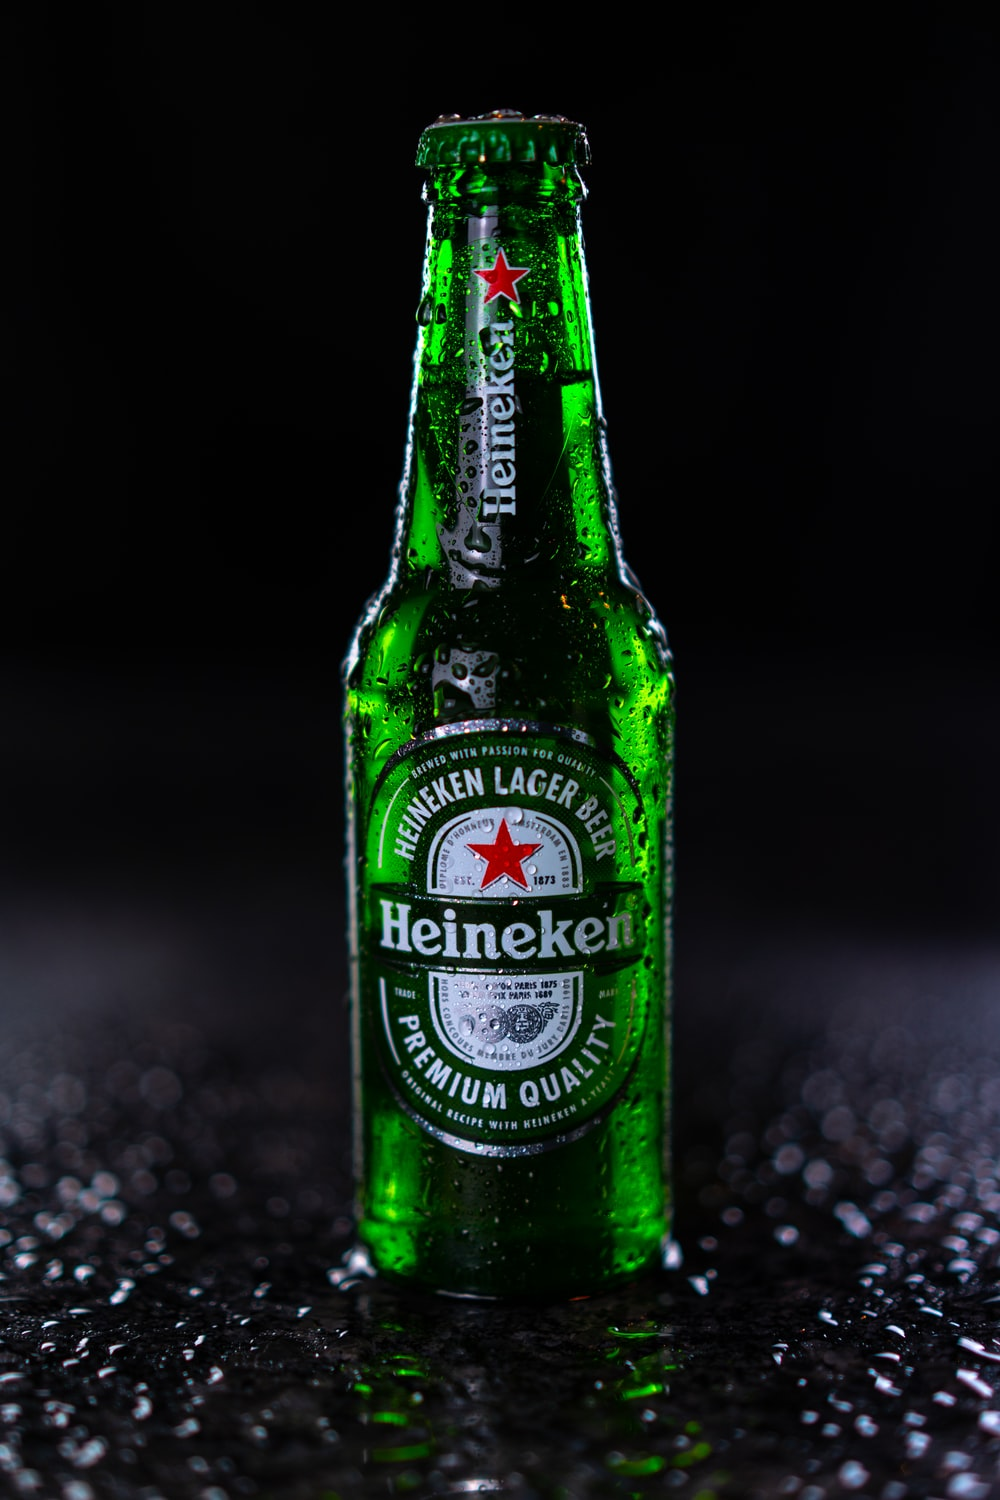 heineken bottle on black and white marble table